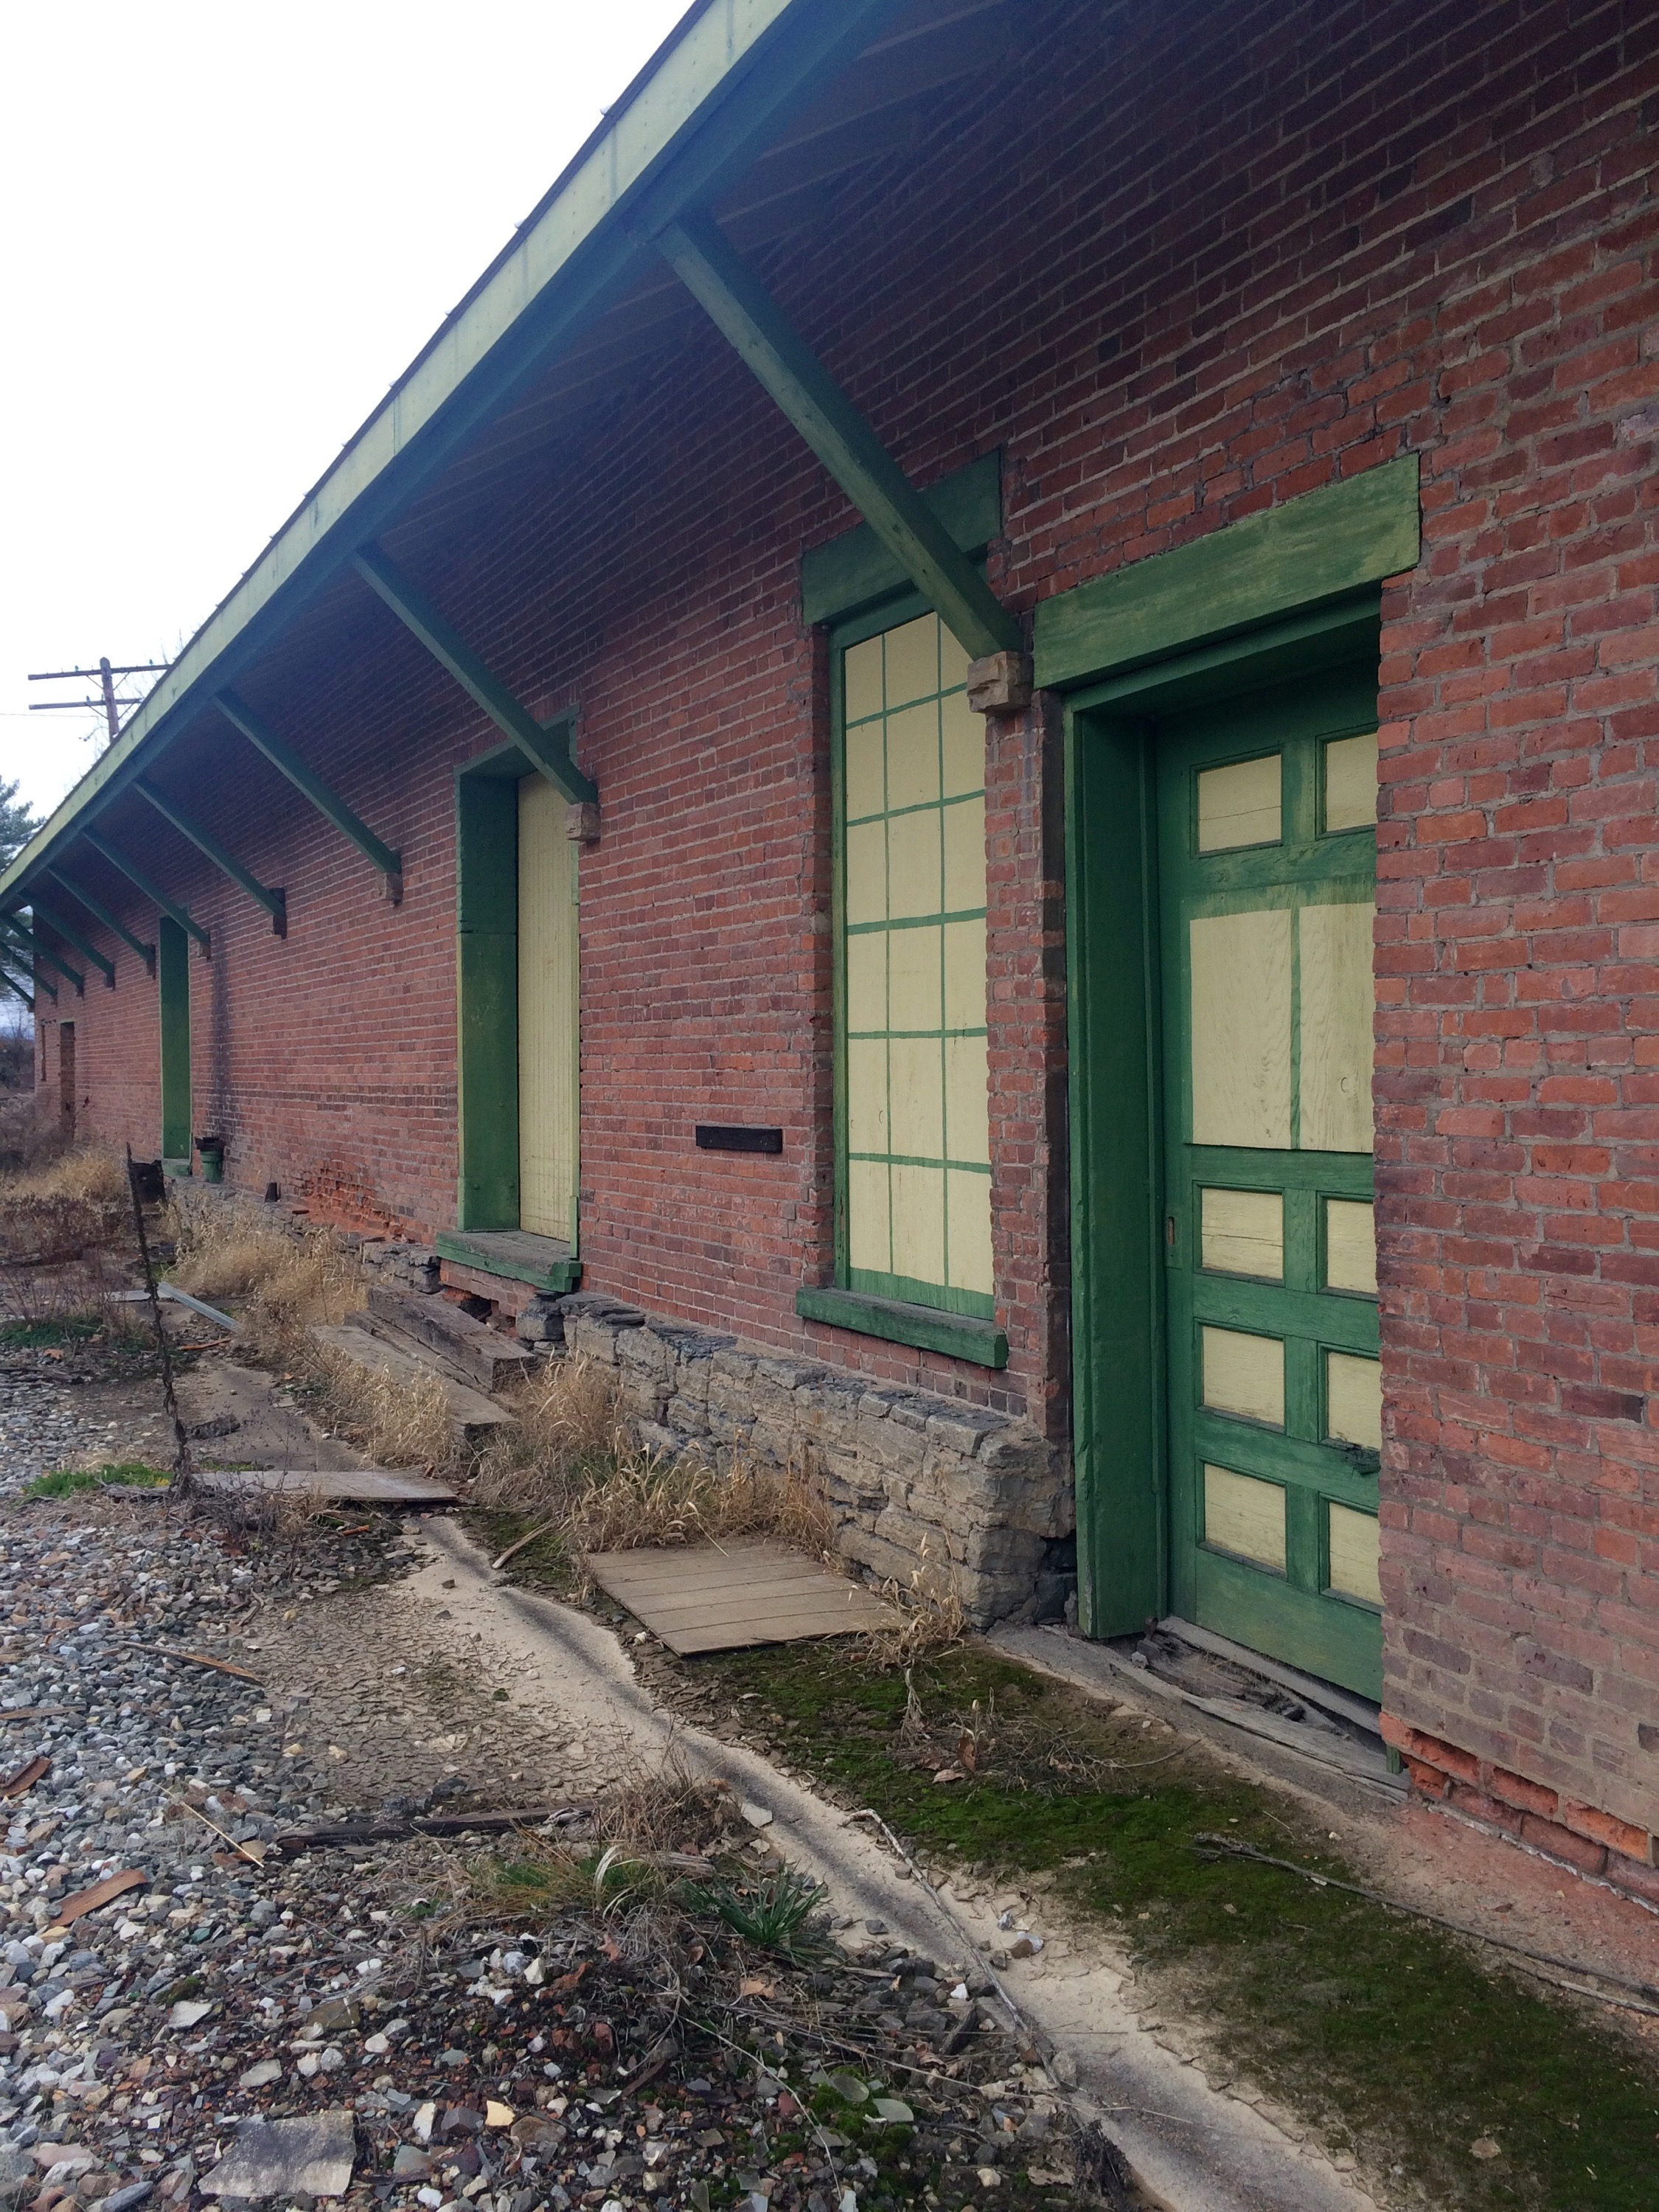 Revisiting An Abandoned Vermont Property Fair Haven Depot